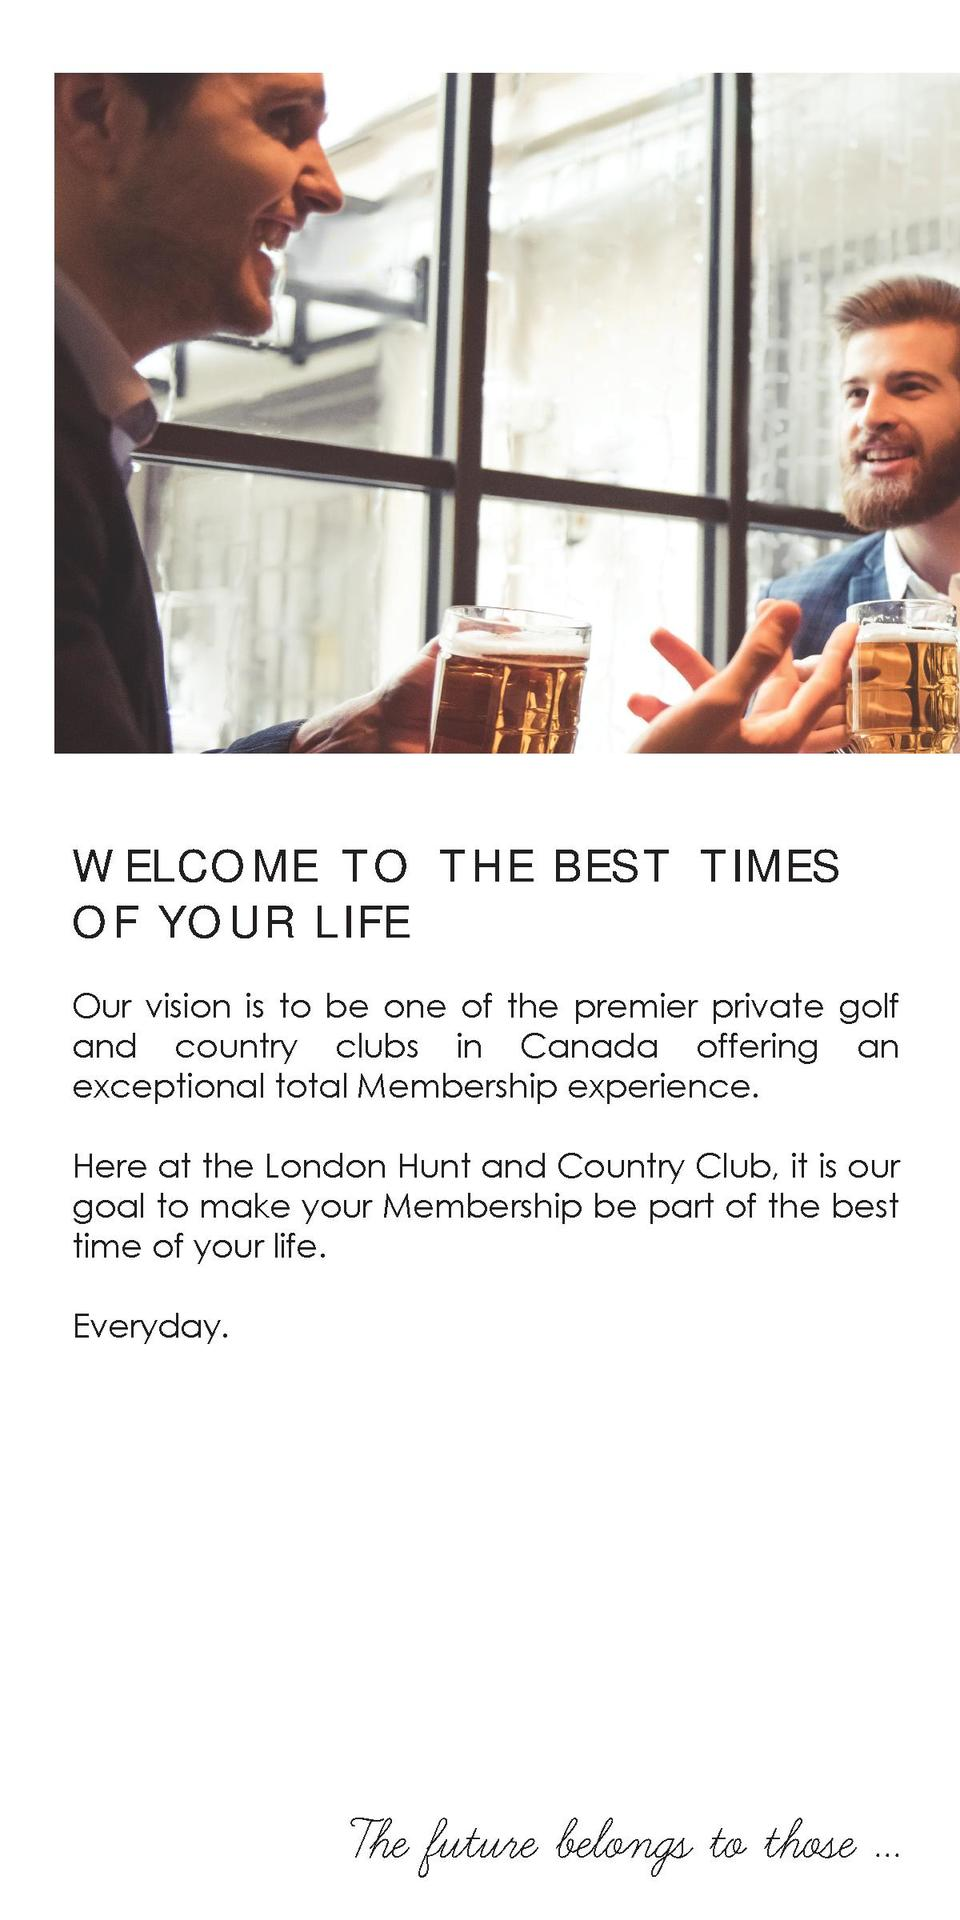 WELC O M E T O T H E B E S T TI M E S OF YOU R LIF E Our vision is to be one of the premier private golf and country clubs...